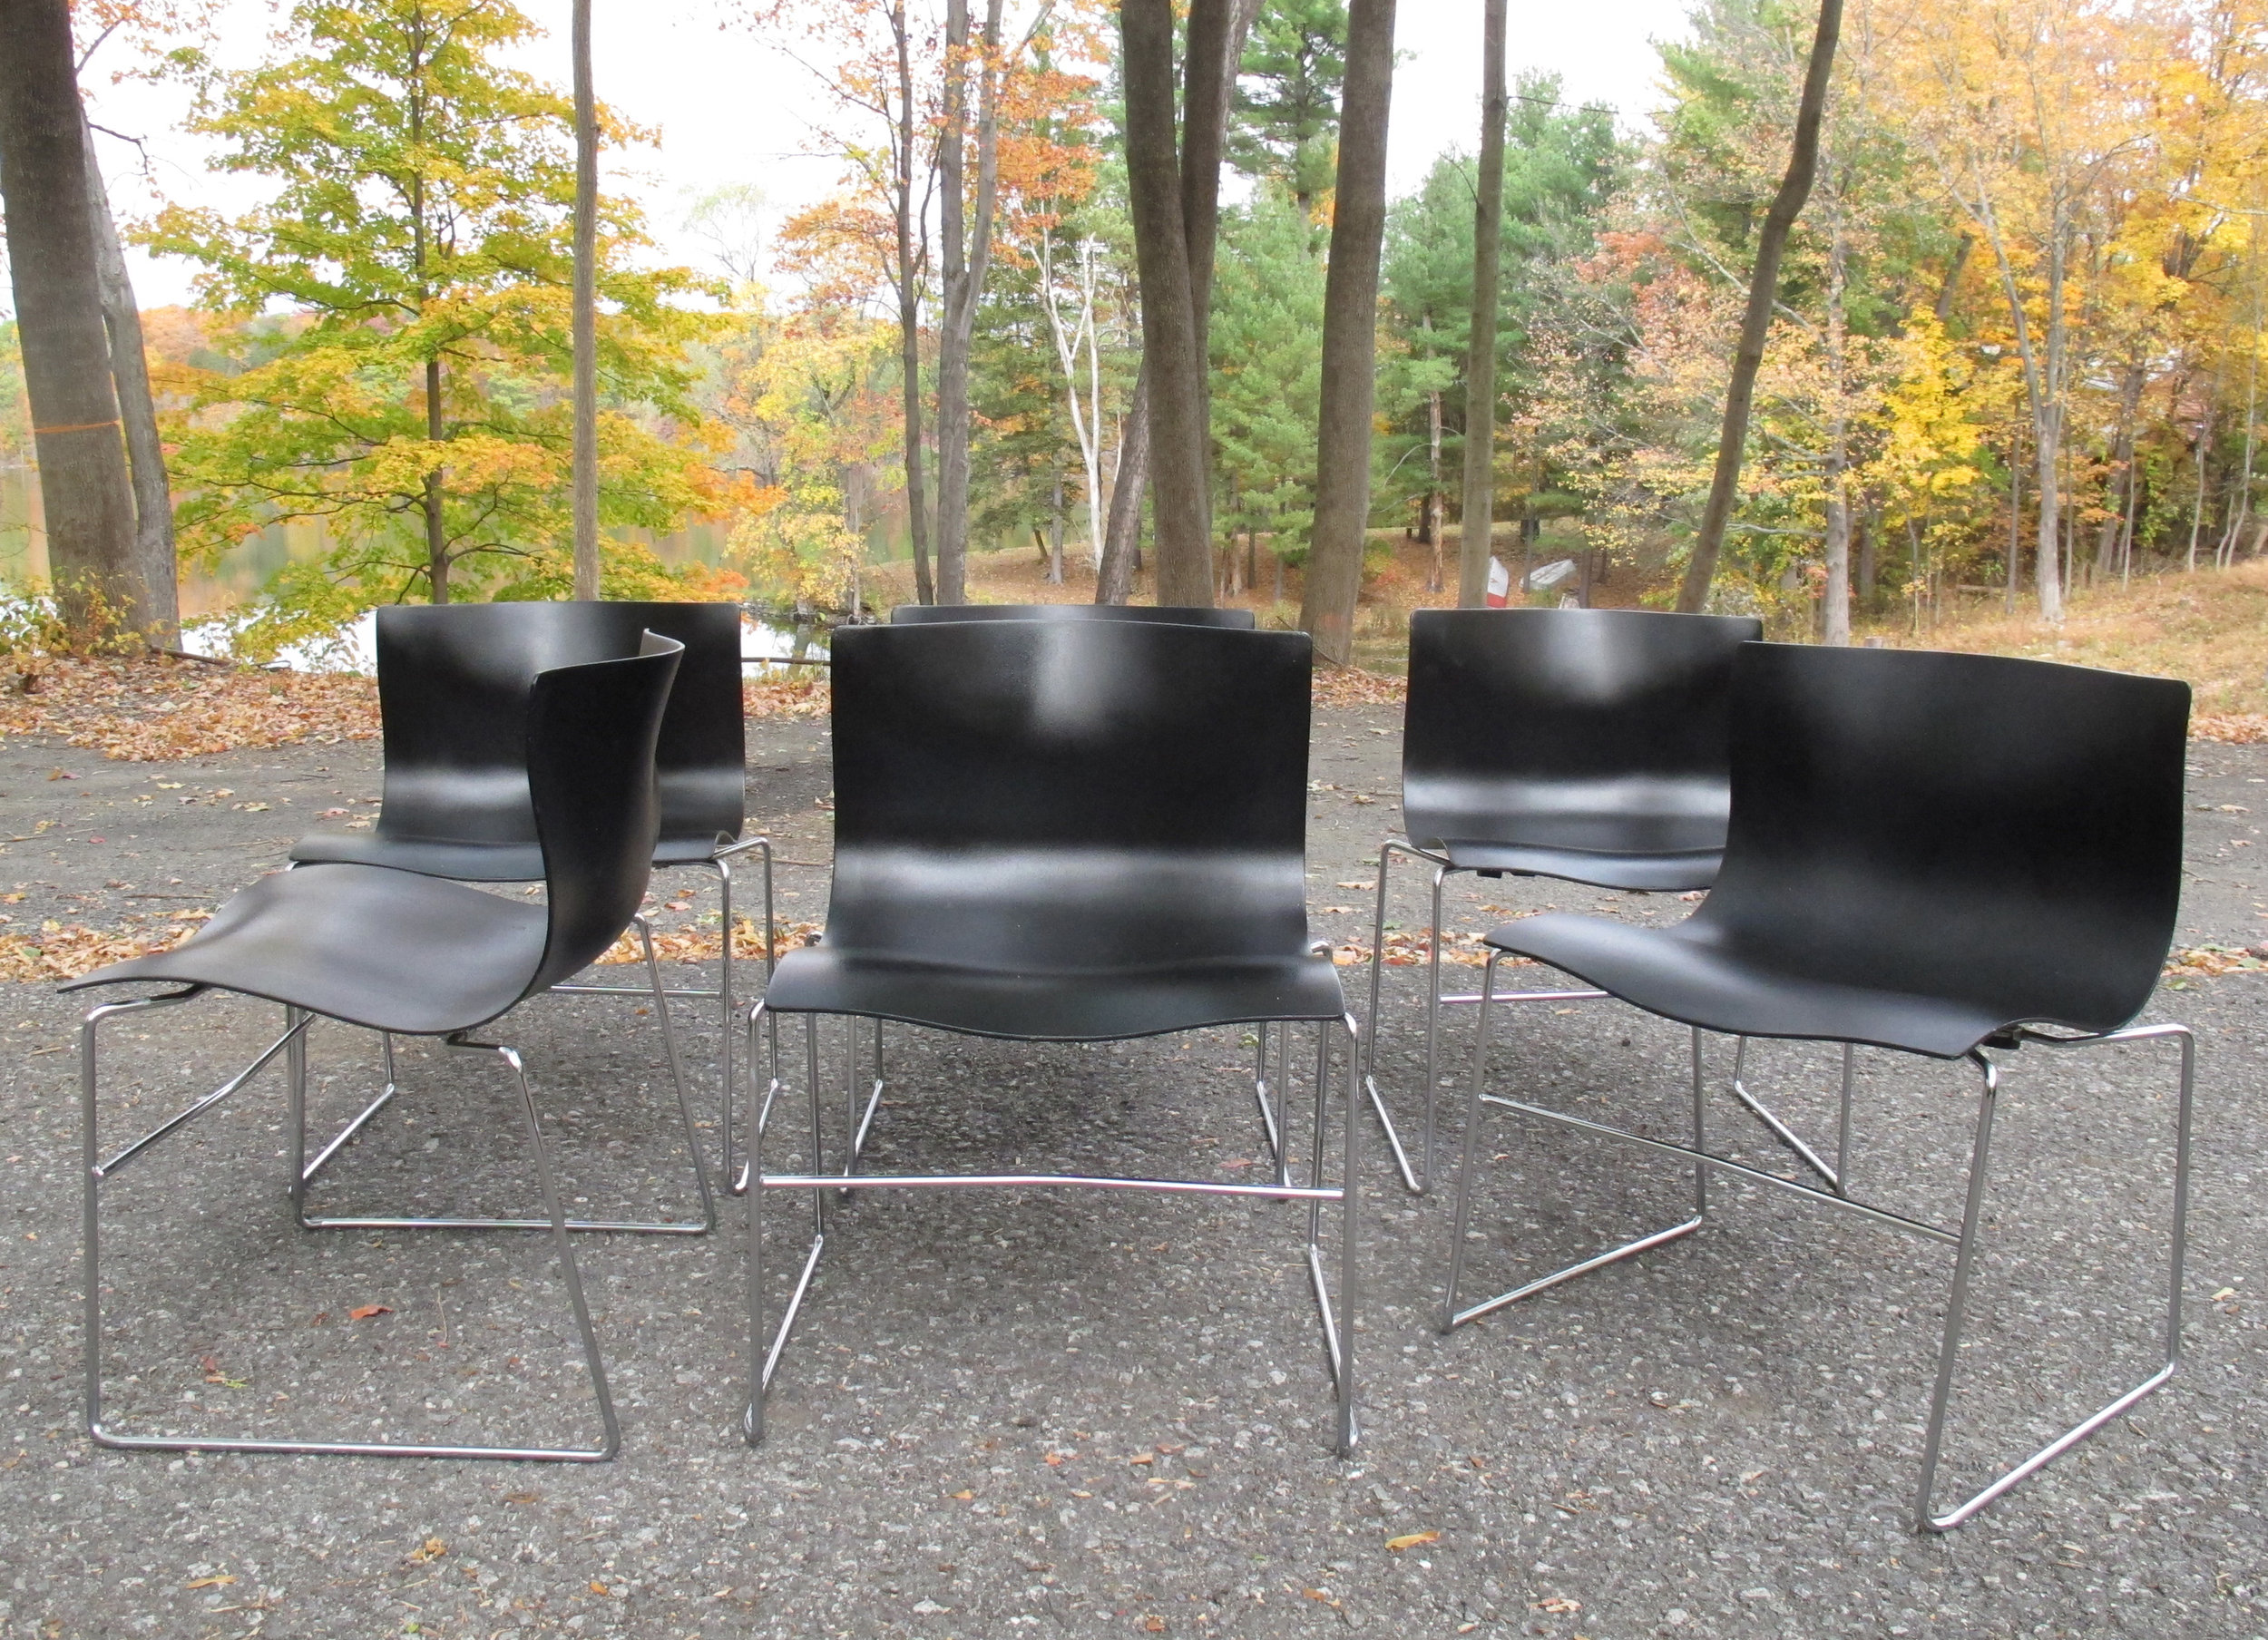 SET OF MASSIMO VIGNELLI HANDKERCHIEF CHAIRS BY KNOLL